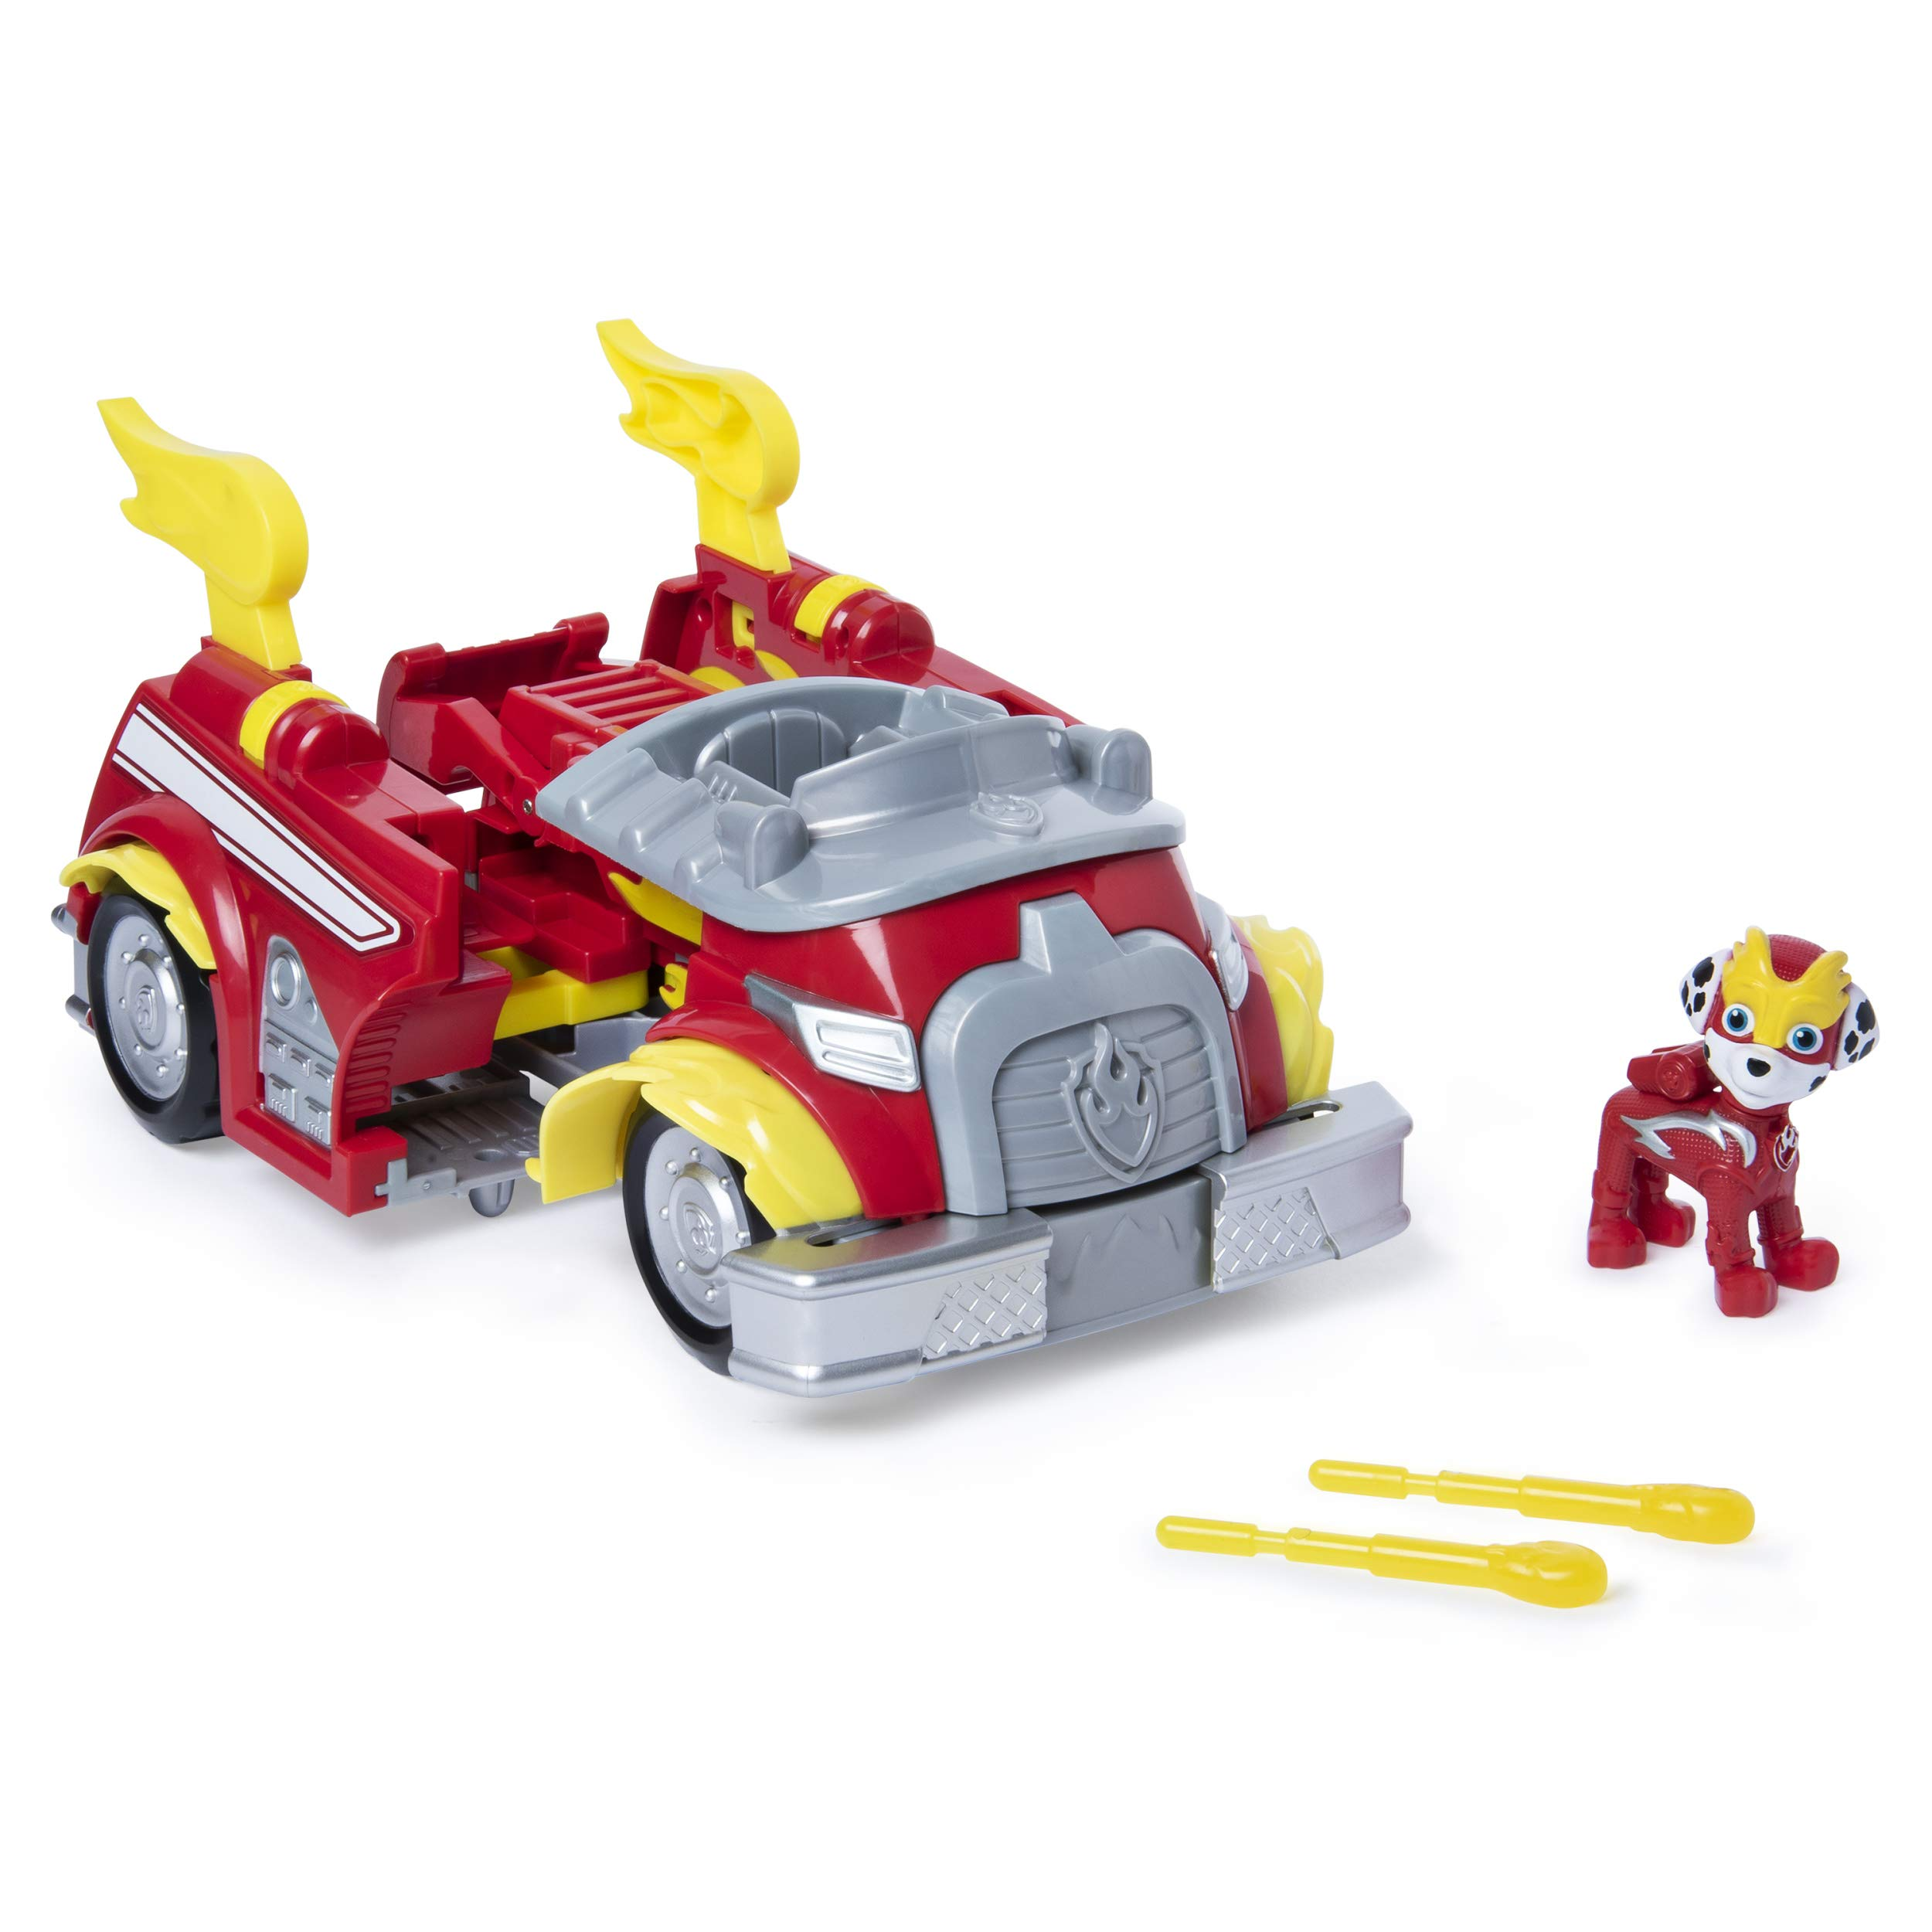 Paw Patrol, Mighty Pups Super Paws Marshall's Powered Up Fire Truck Transforming Vehicle by Paw Patrol